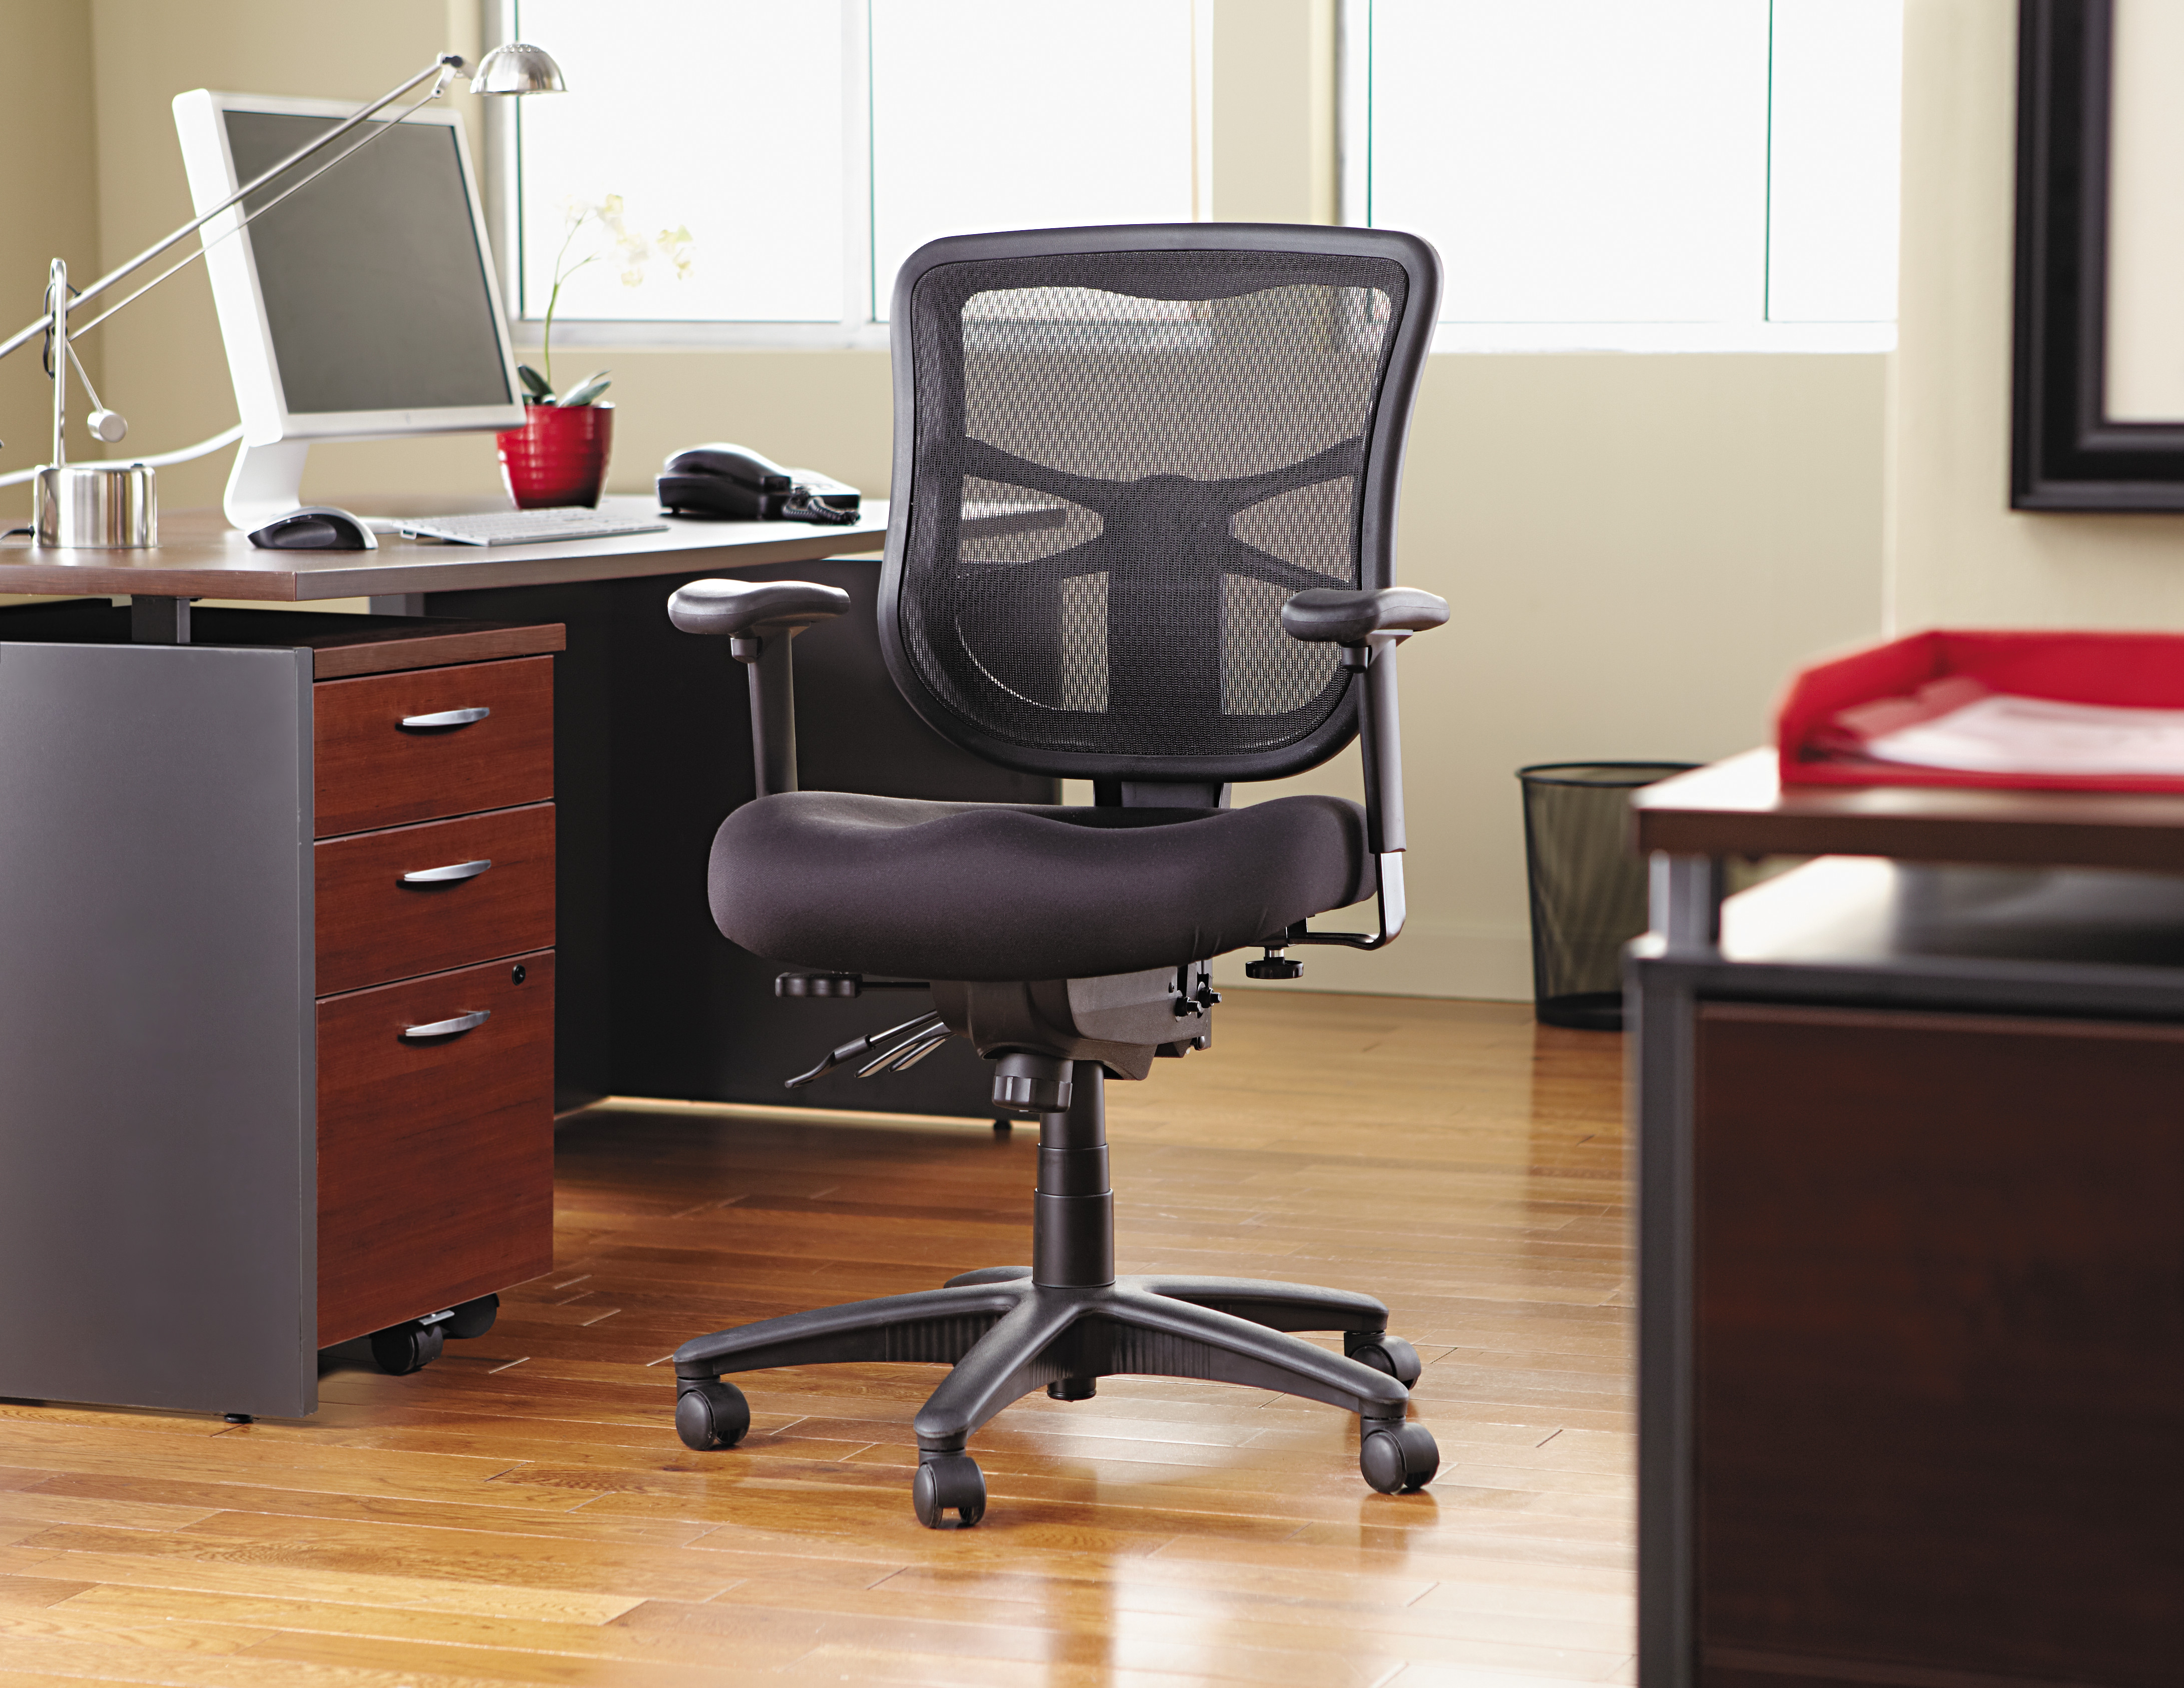 Merveilleux Alera Elusion Series Mesh Mid Back Multifunction Office Chair, Black Image  9 Of 9